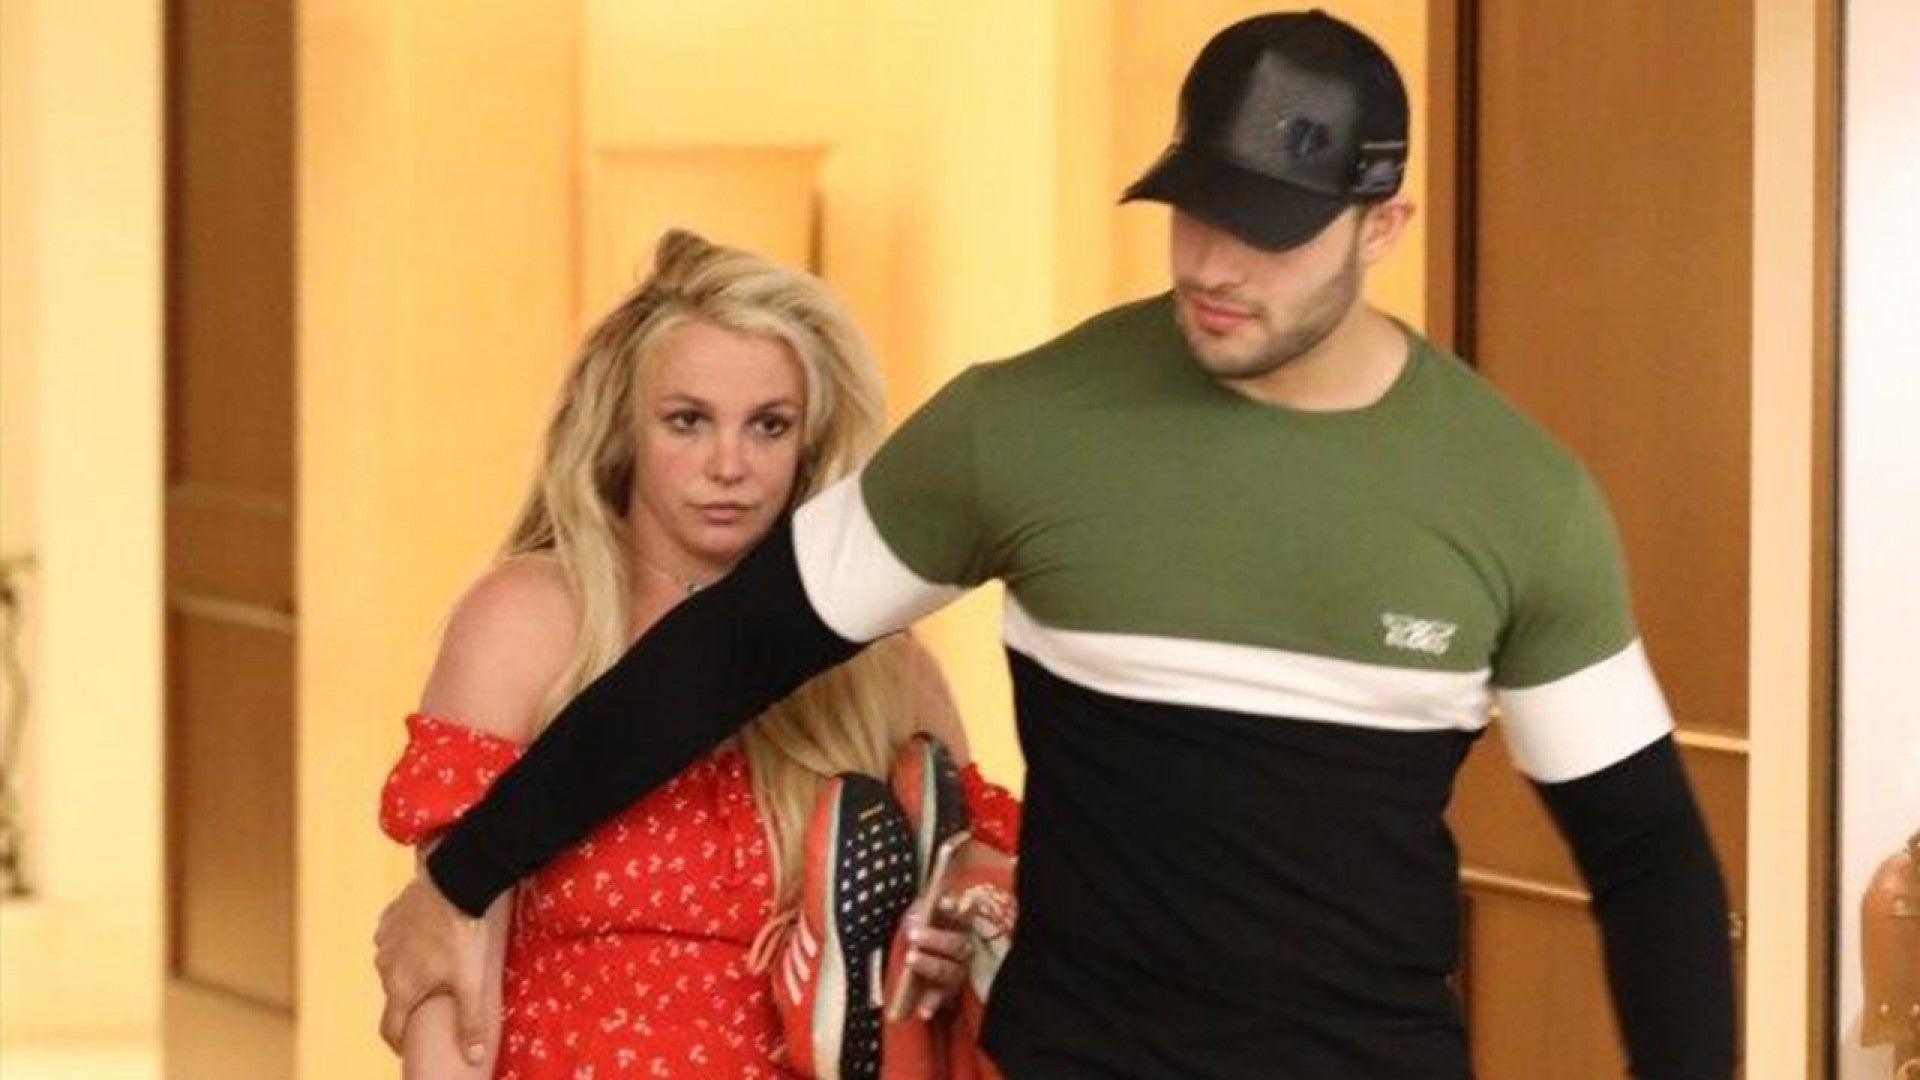 eto_free_britney_new_photo_042219.jpg?h=